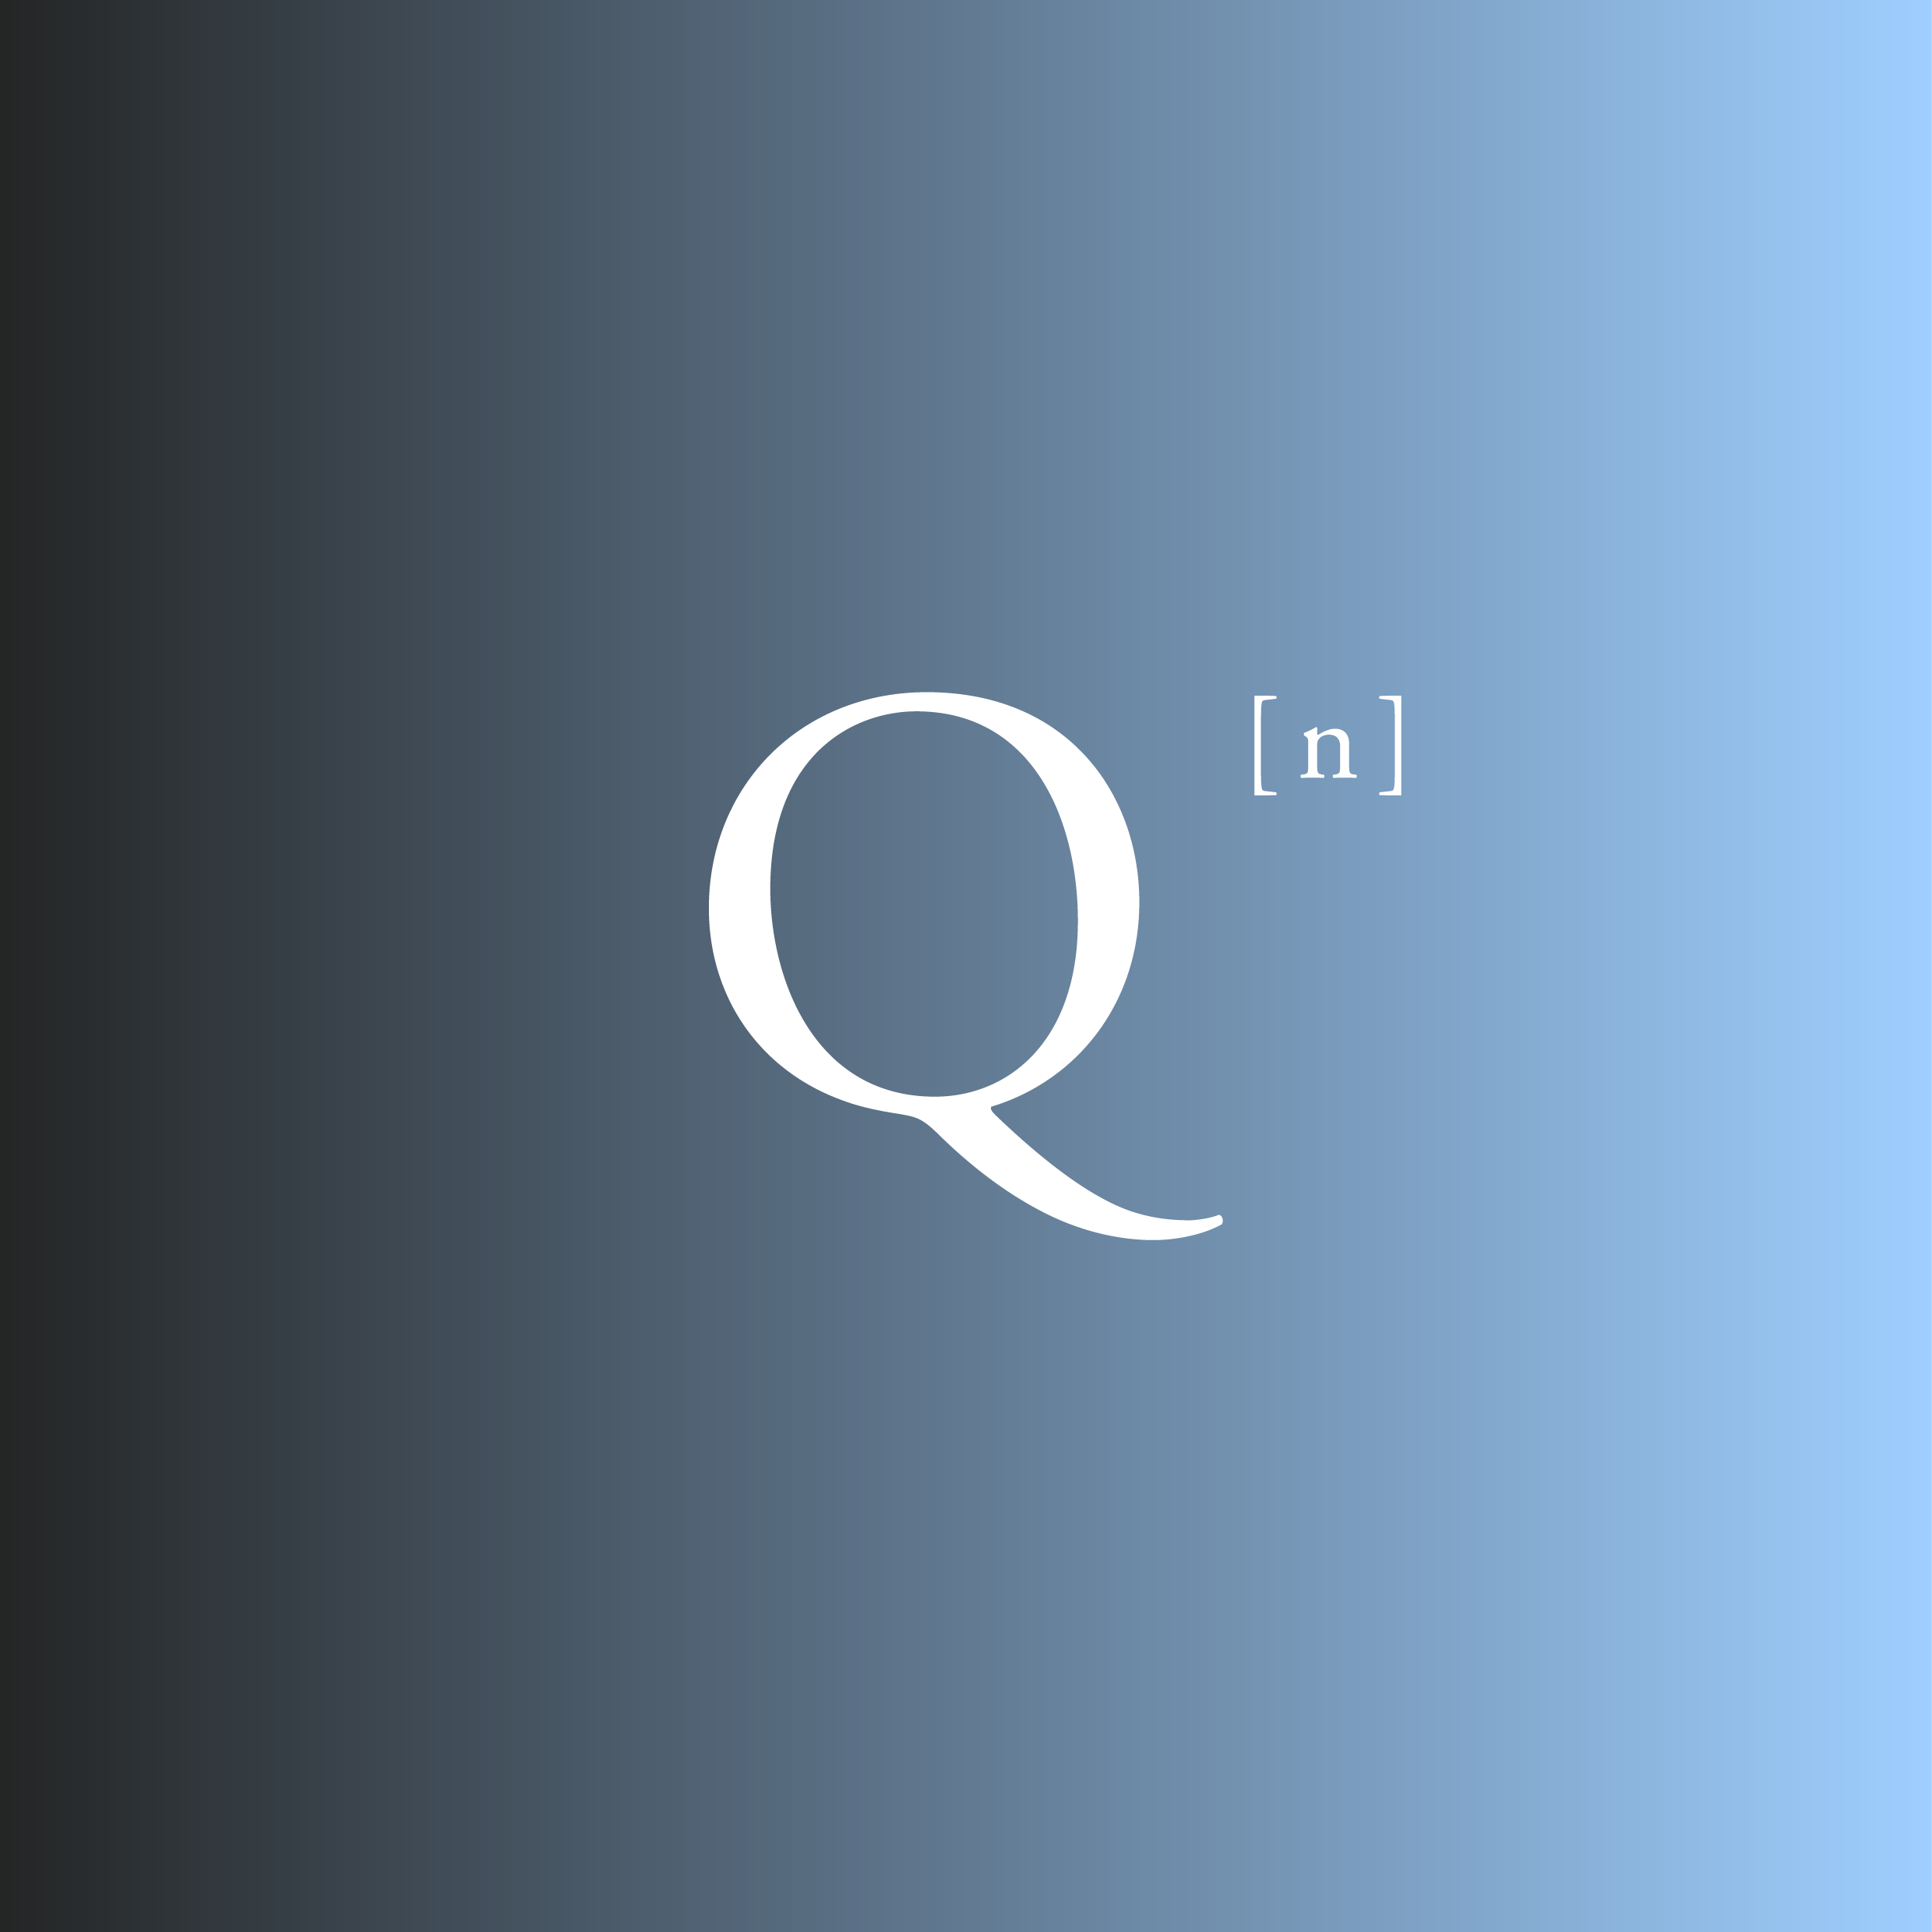 Quark: How Does The Invisible Sound?